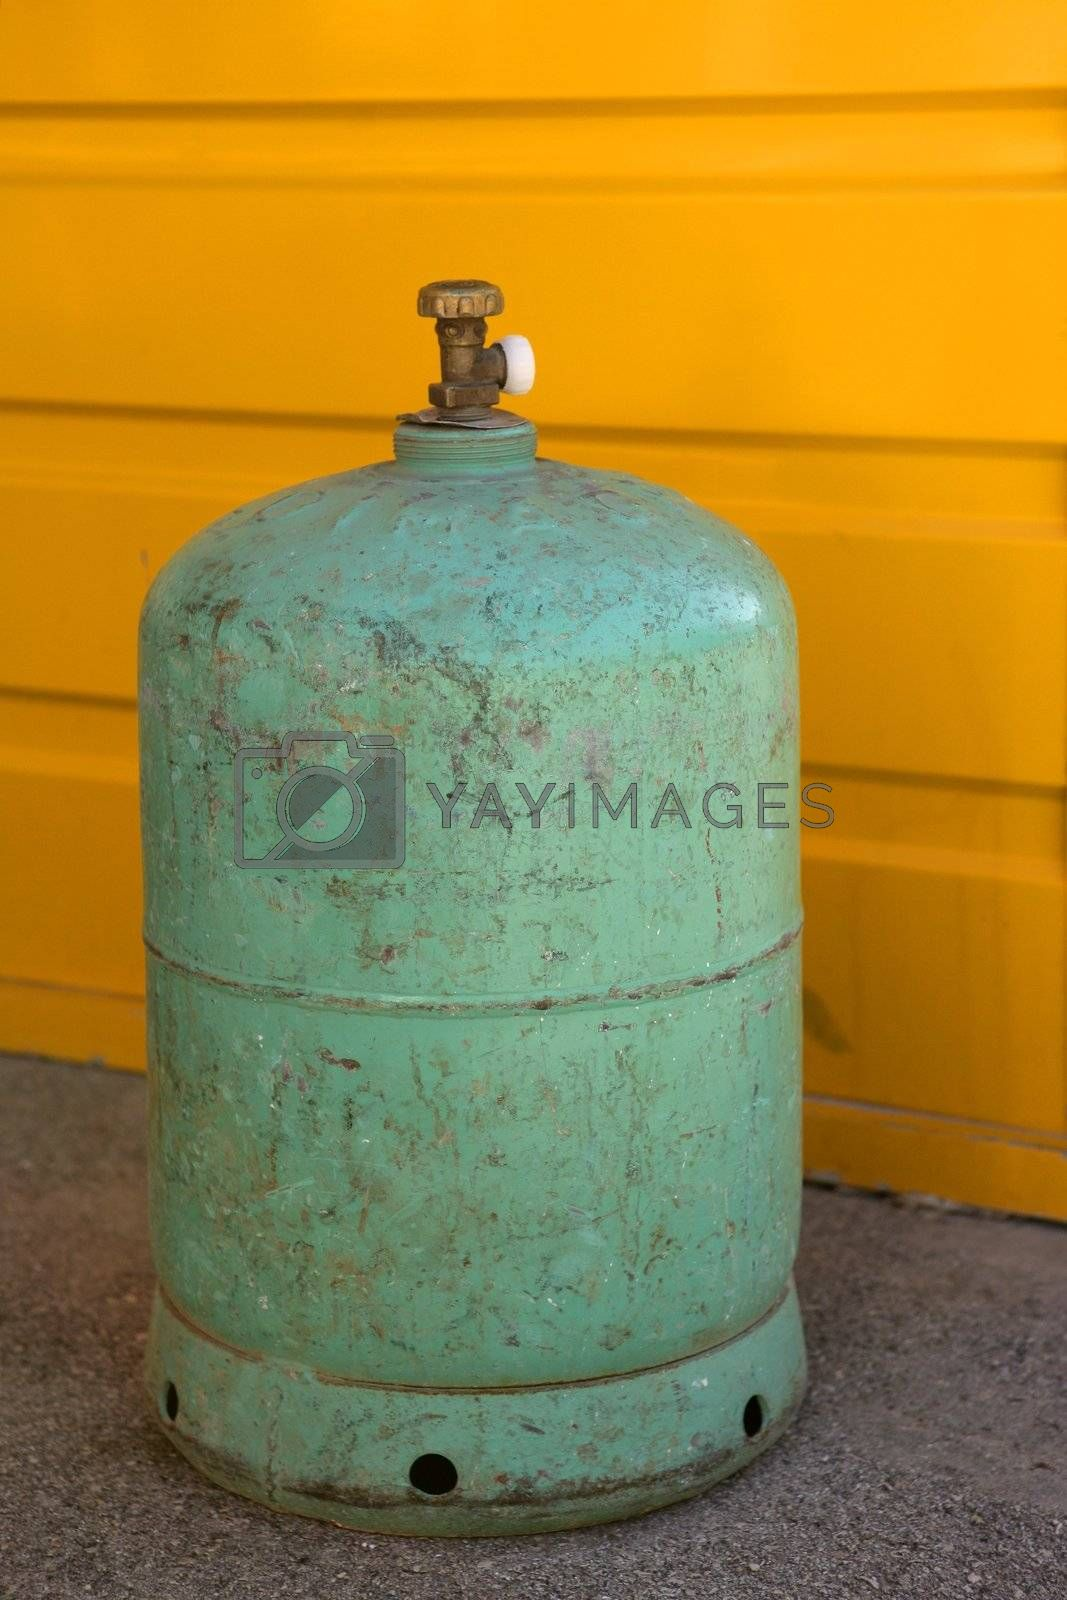 Royalty free image of Camping gas container, green over yellow by lunamarina